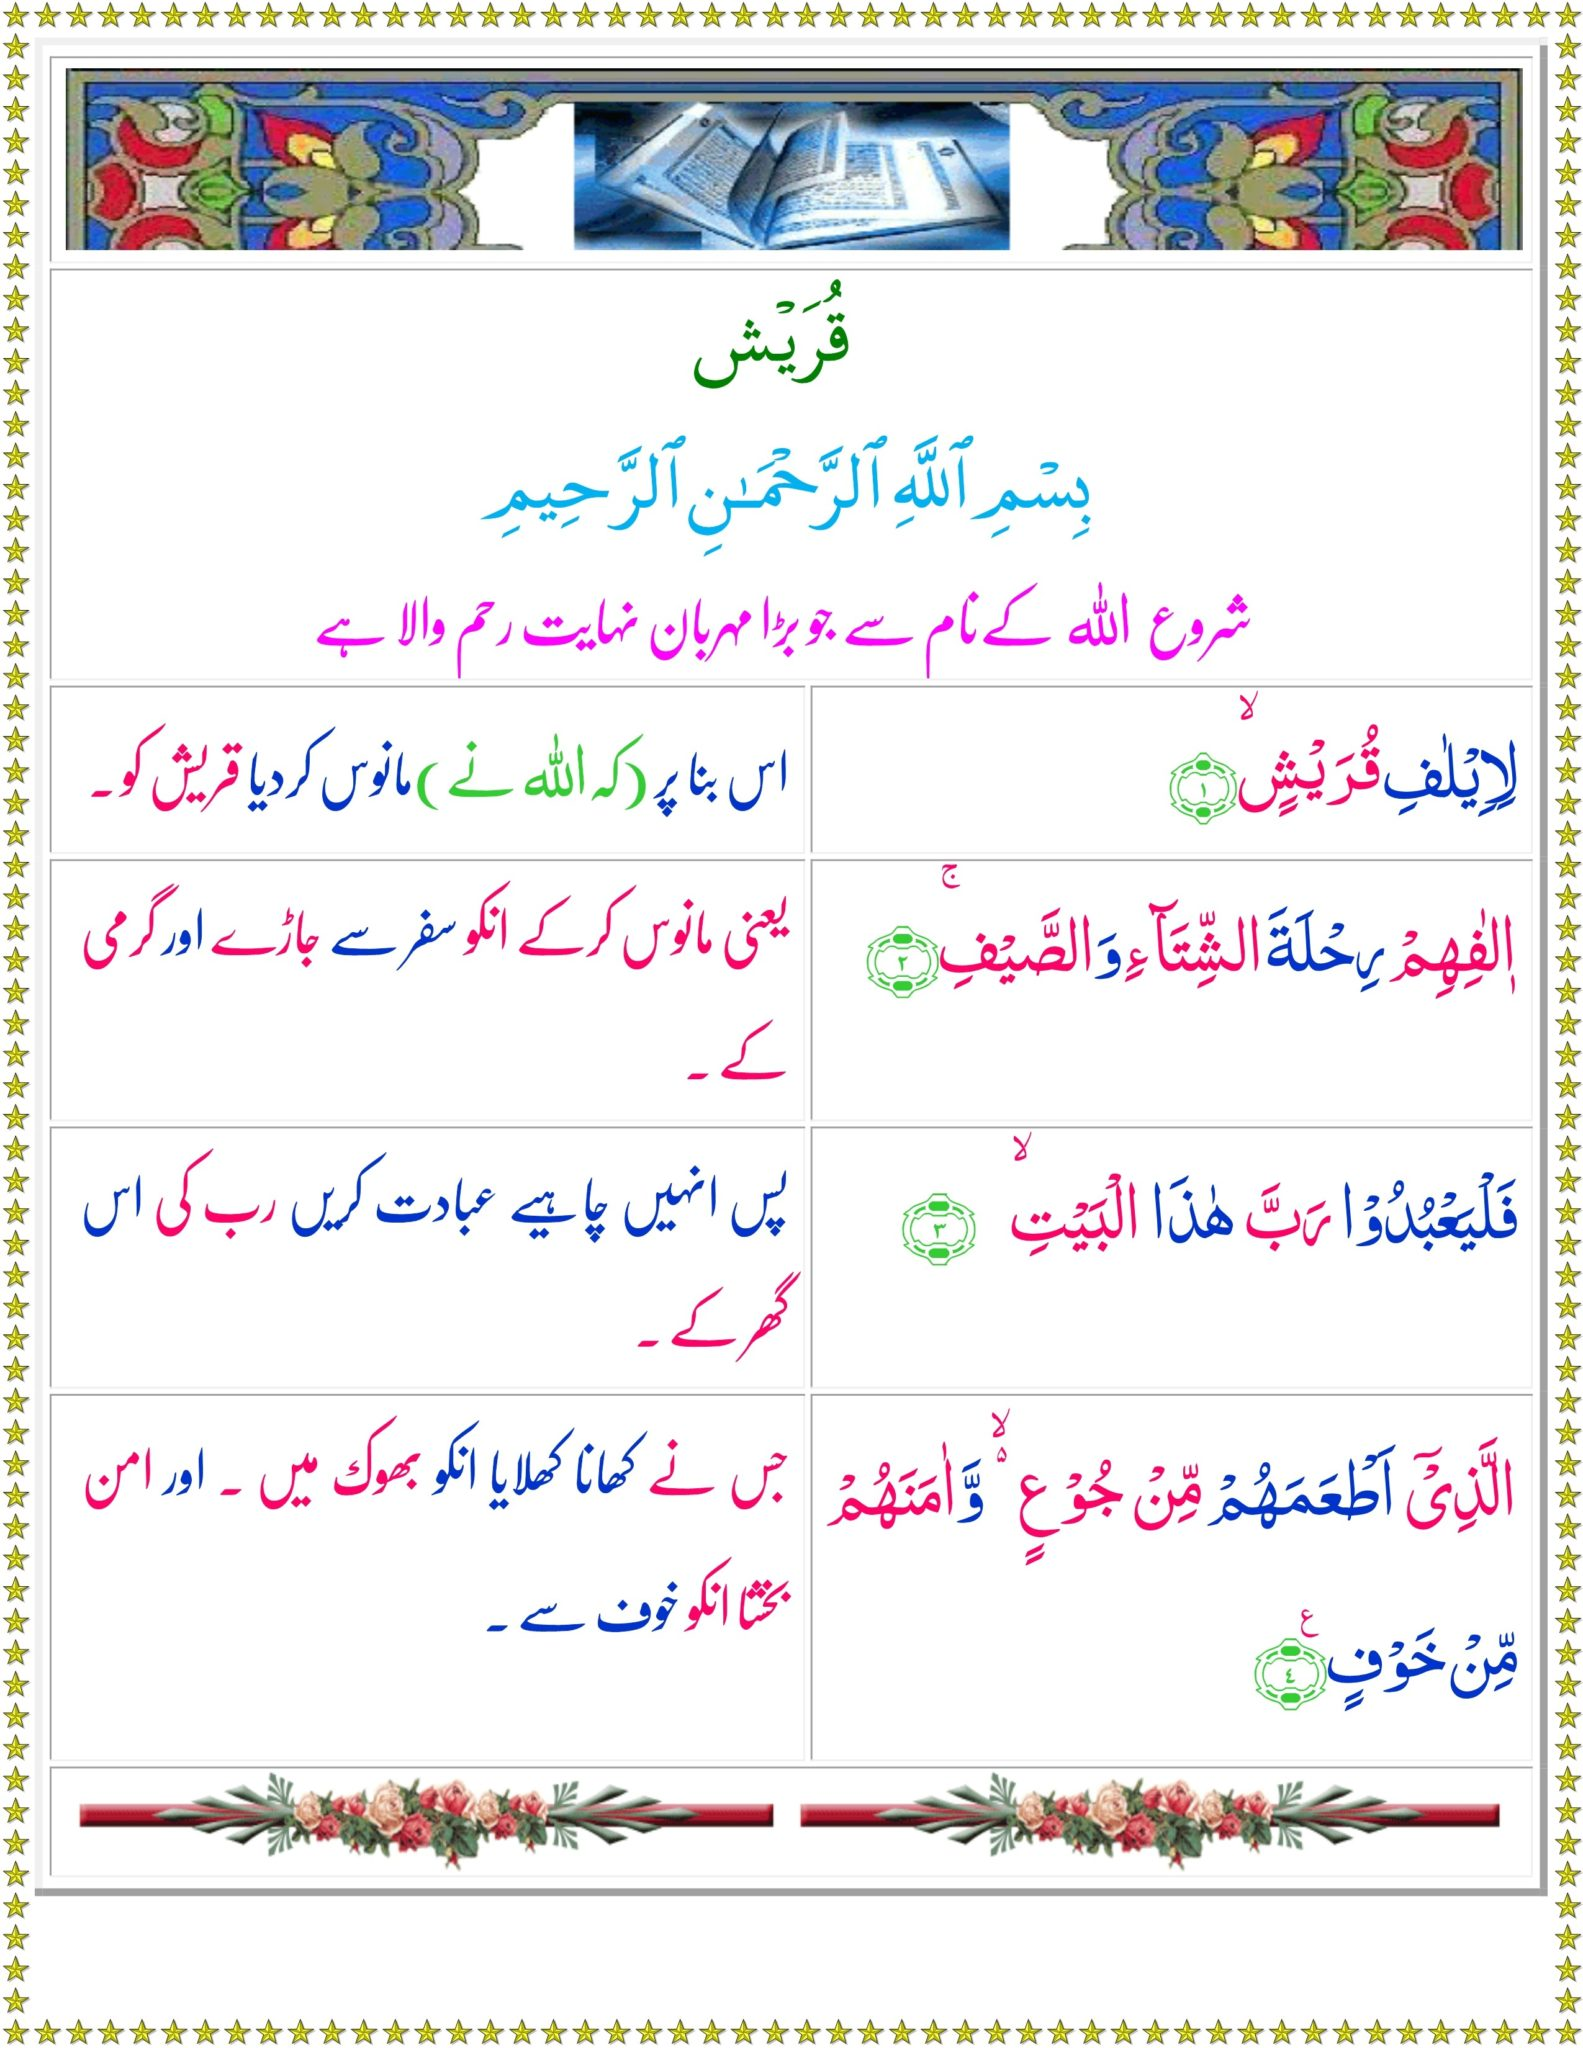 Surah Quraish translation in Urdu, Hindi